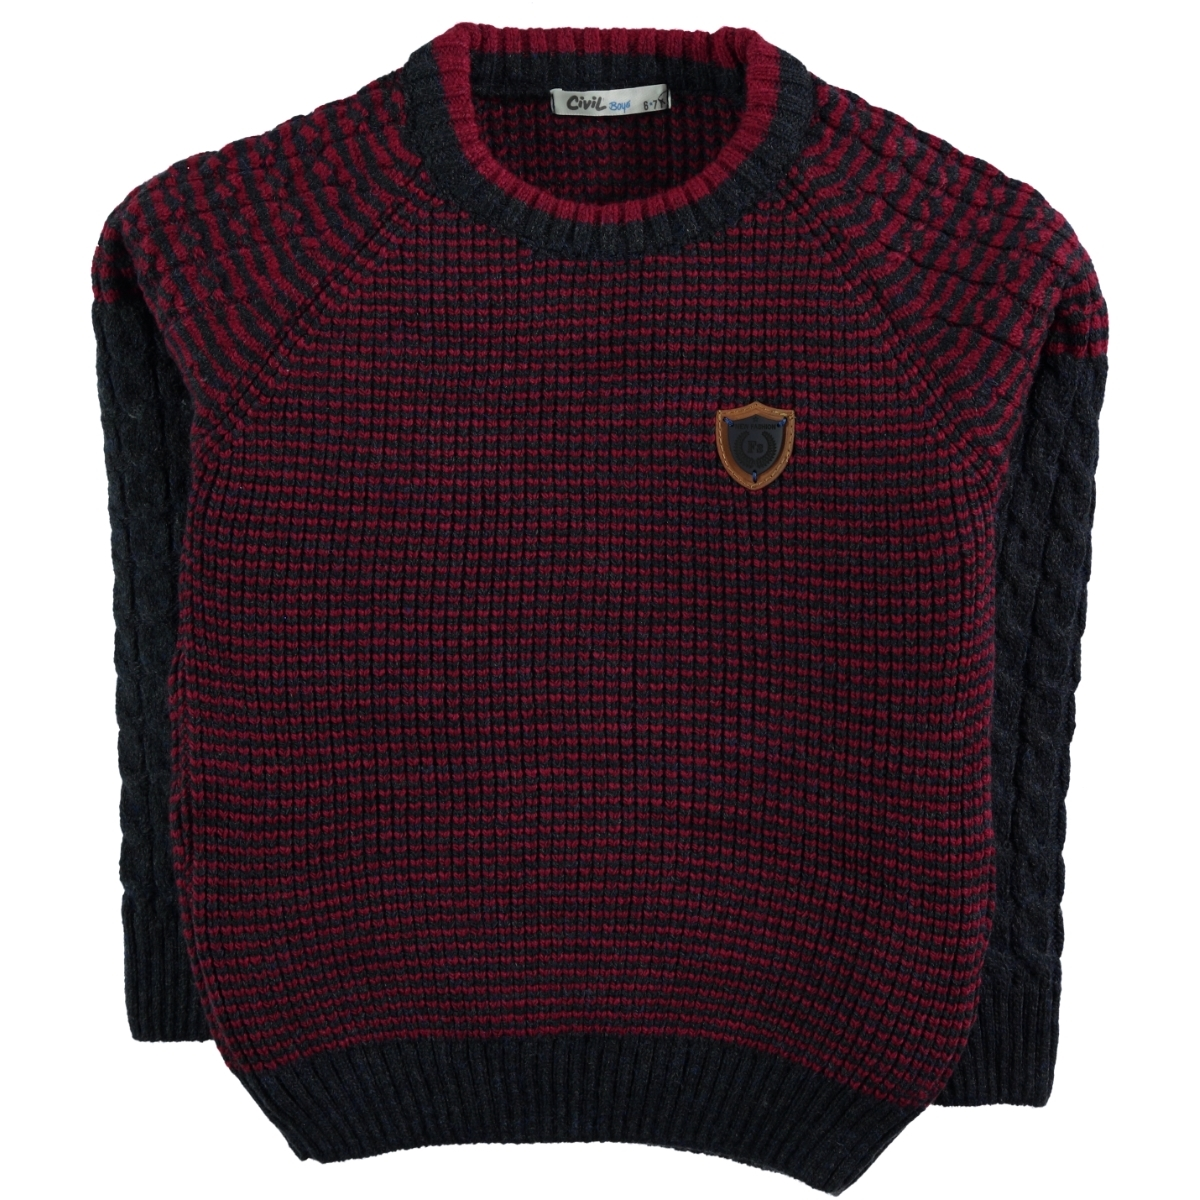 Civil Boys Age 6-9 Boy's Navy Blue Sweater